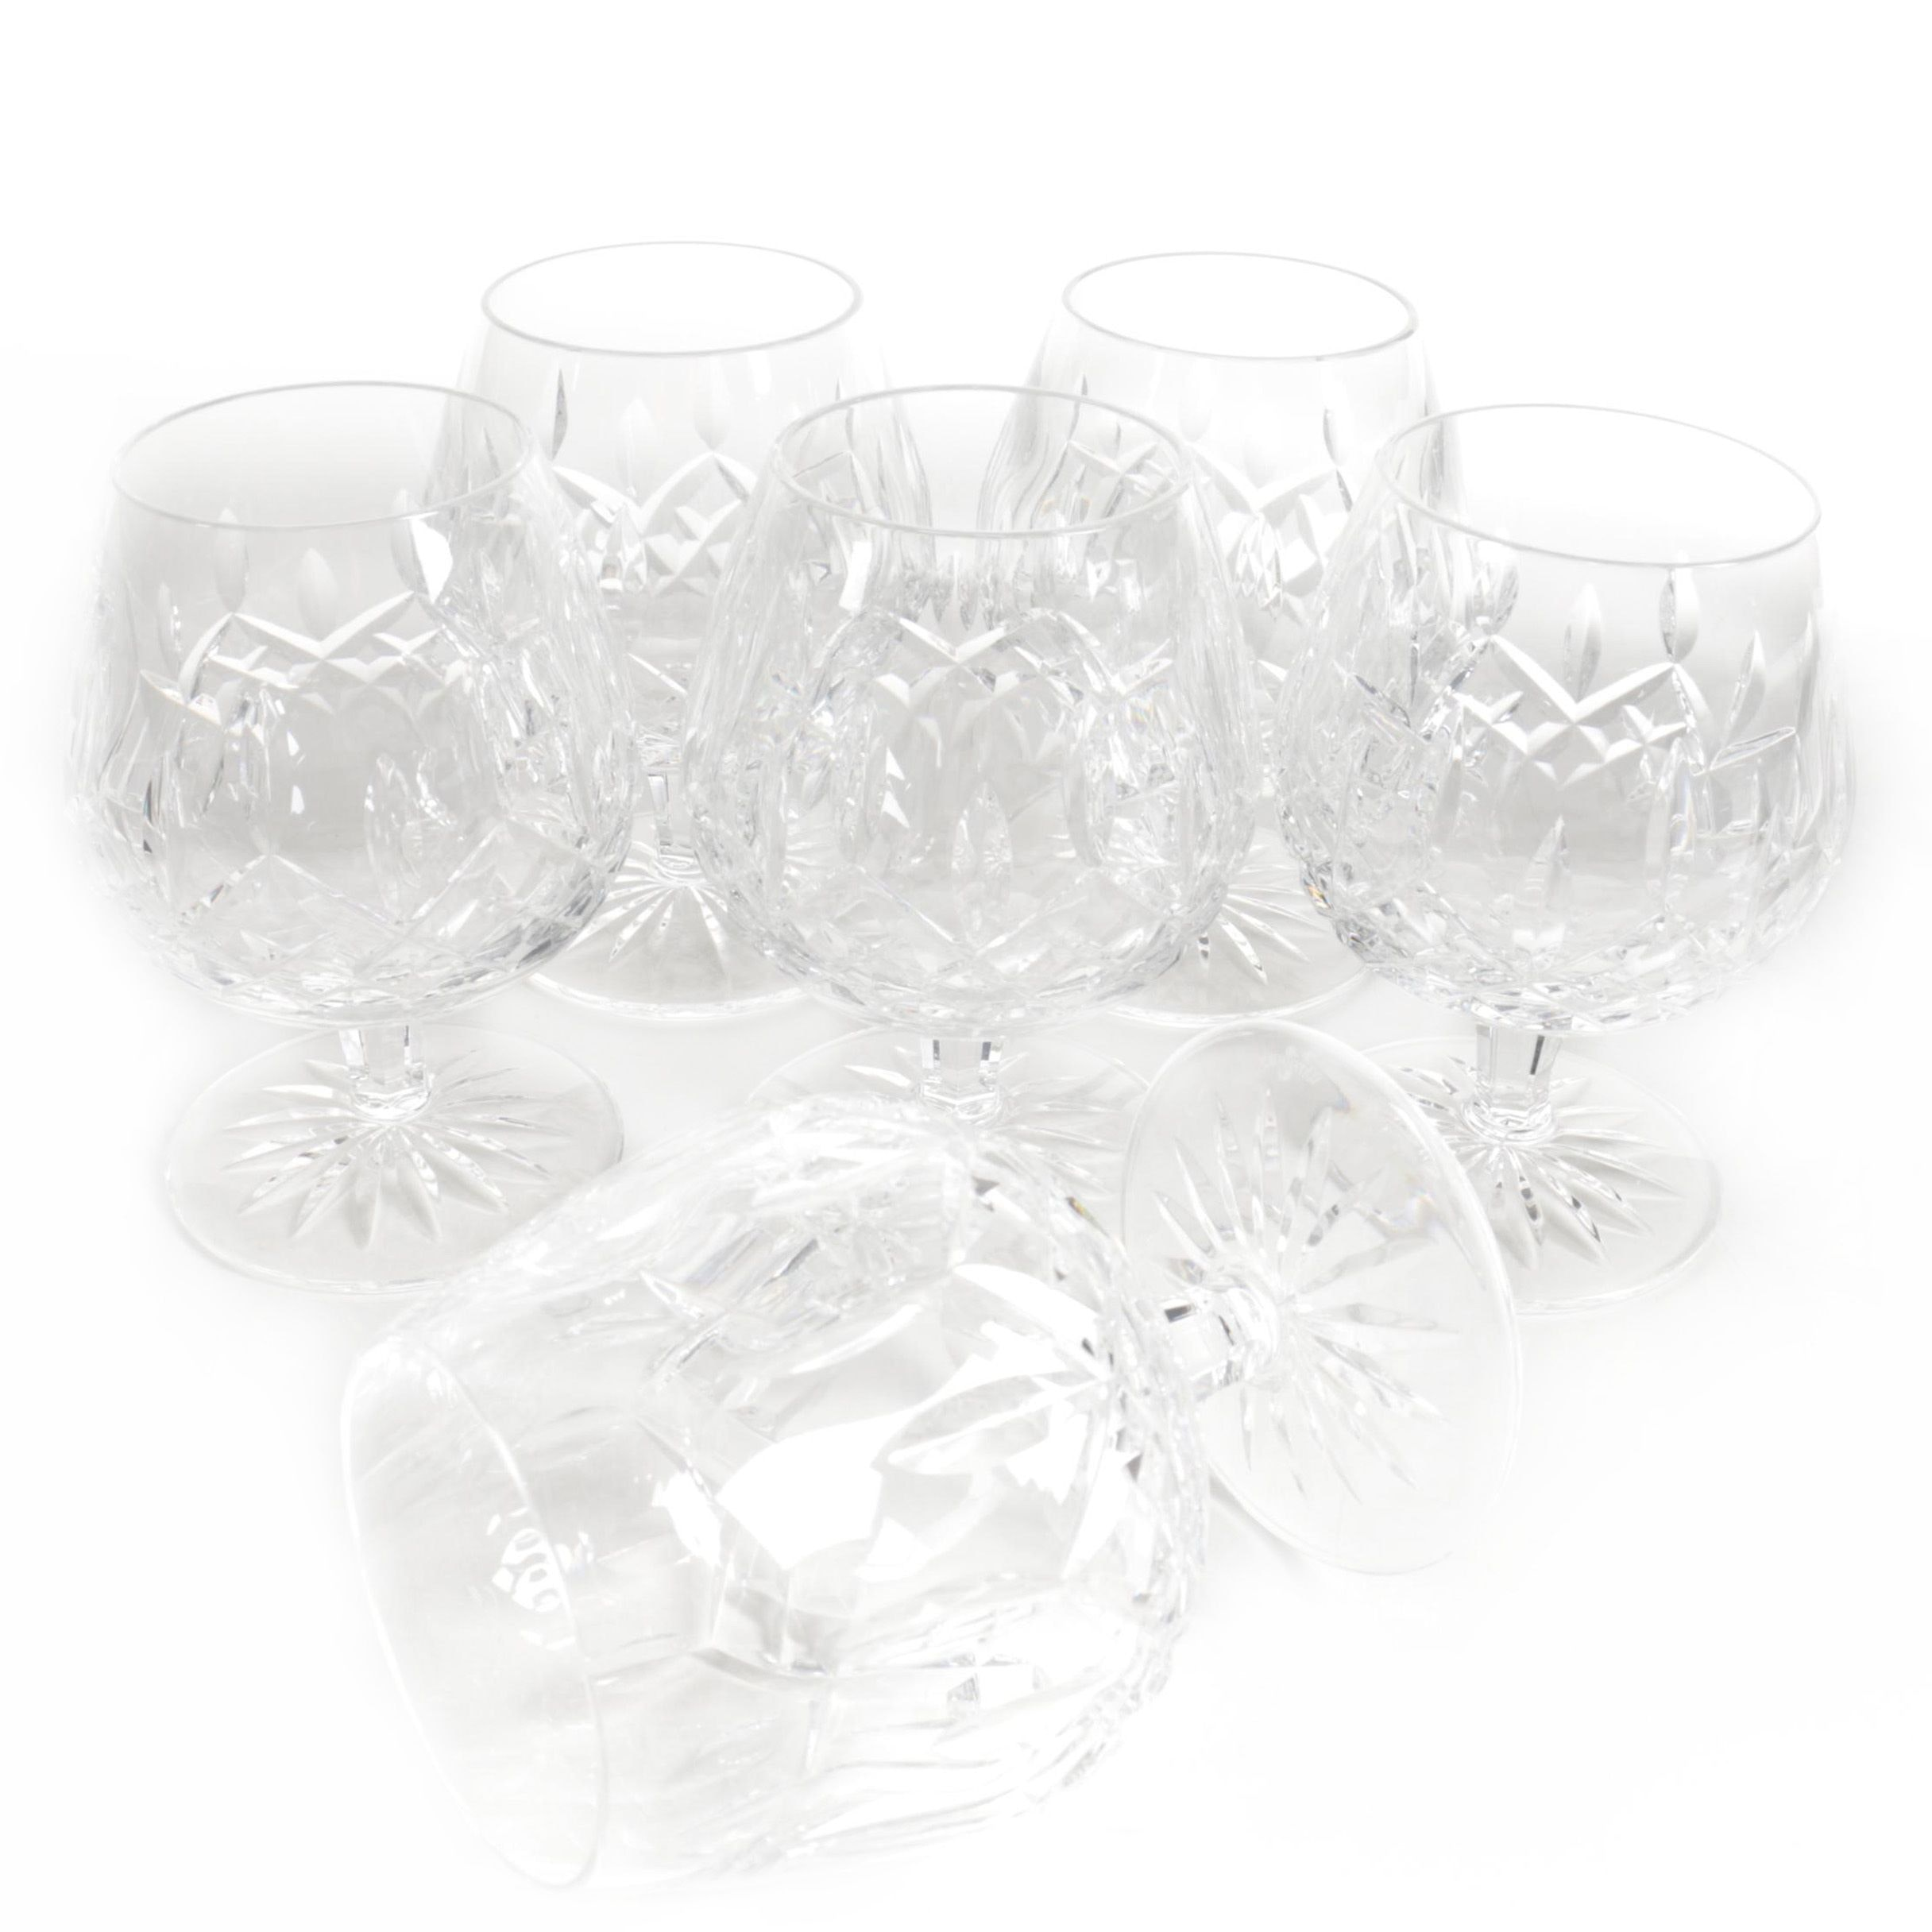 "Waterford Crystal ""Lismore"" Brandy Snifters"